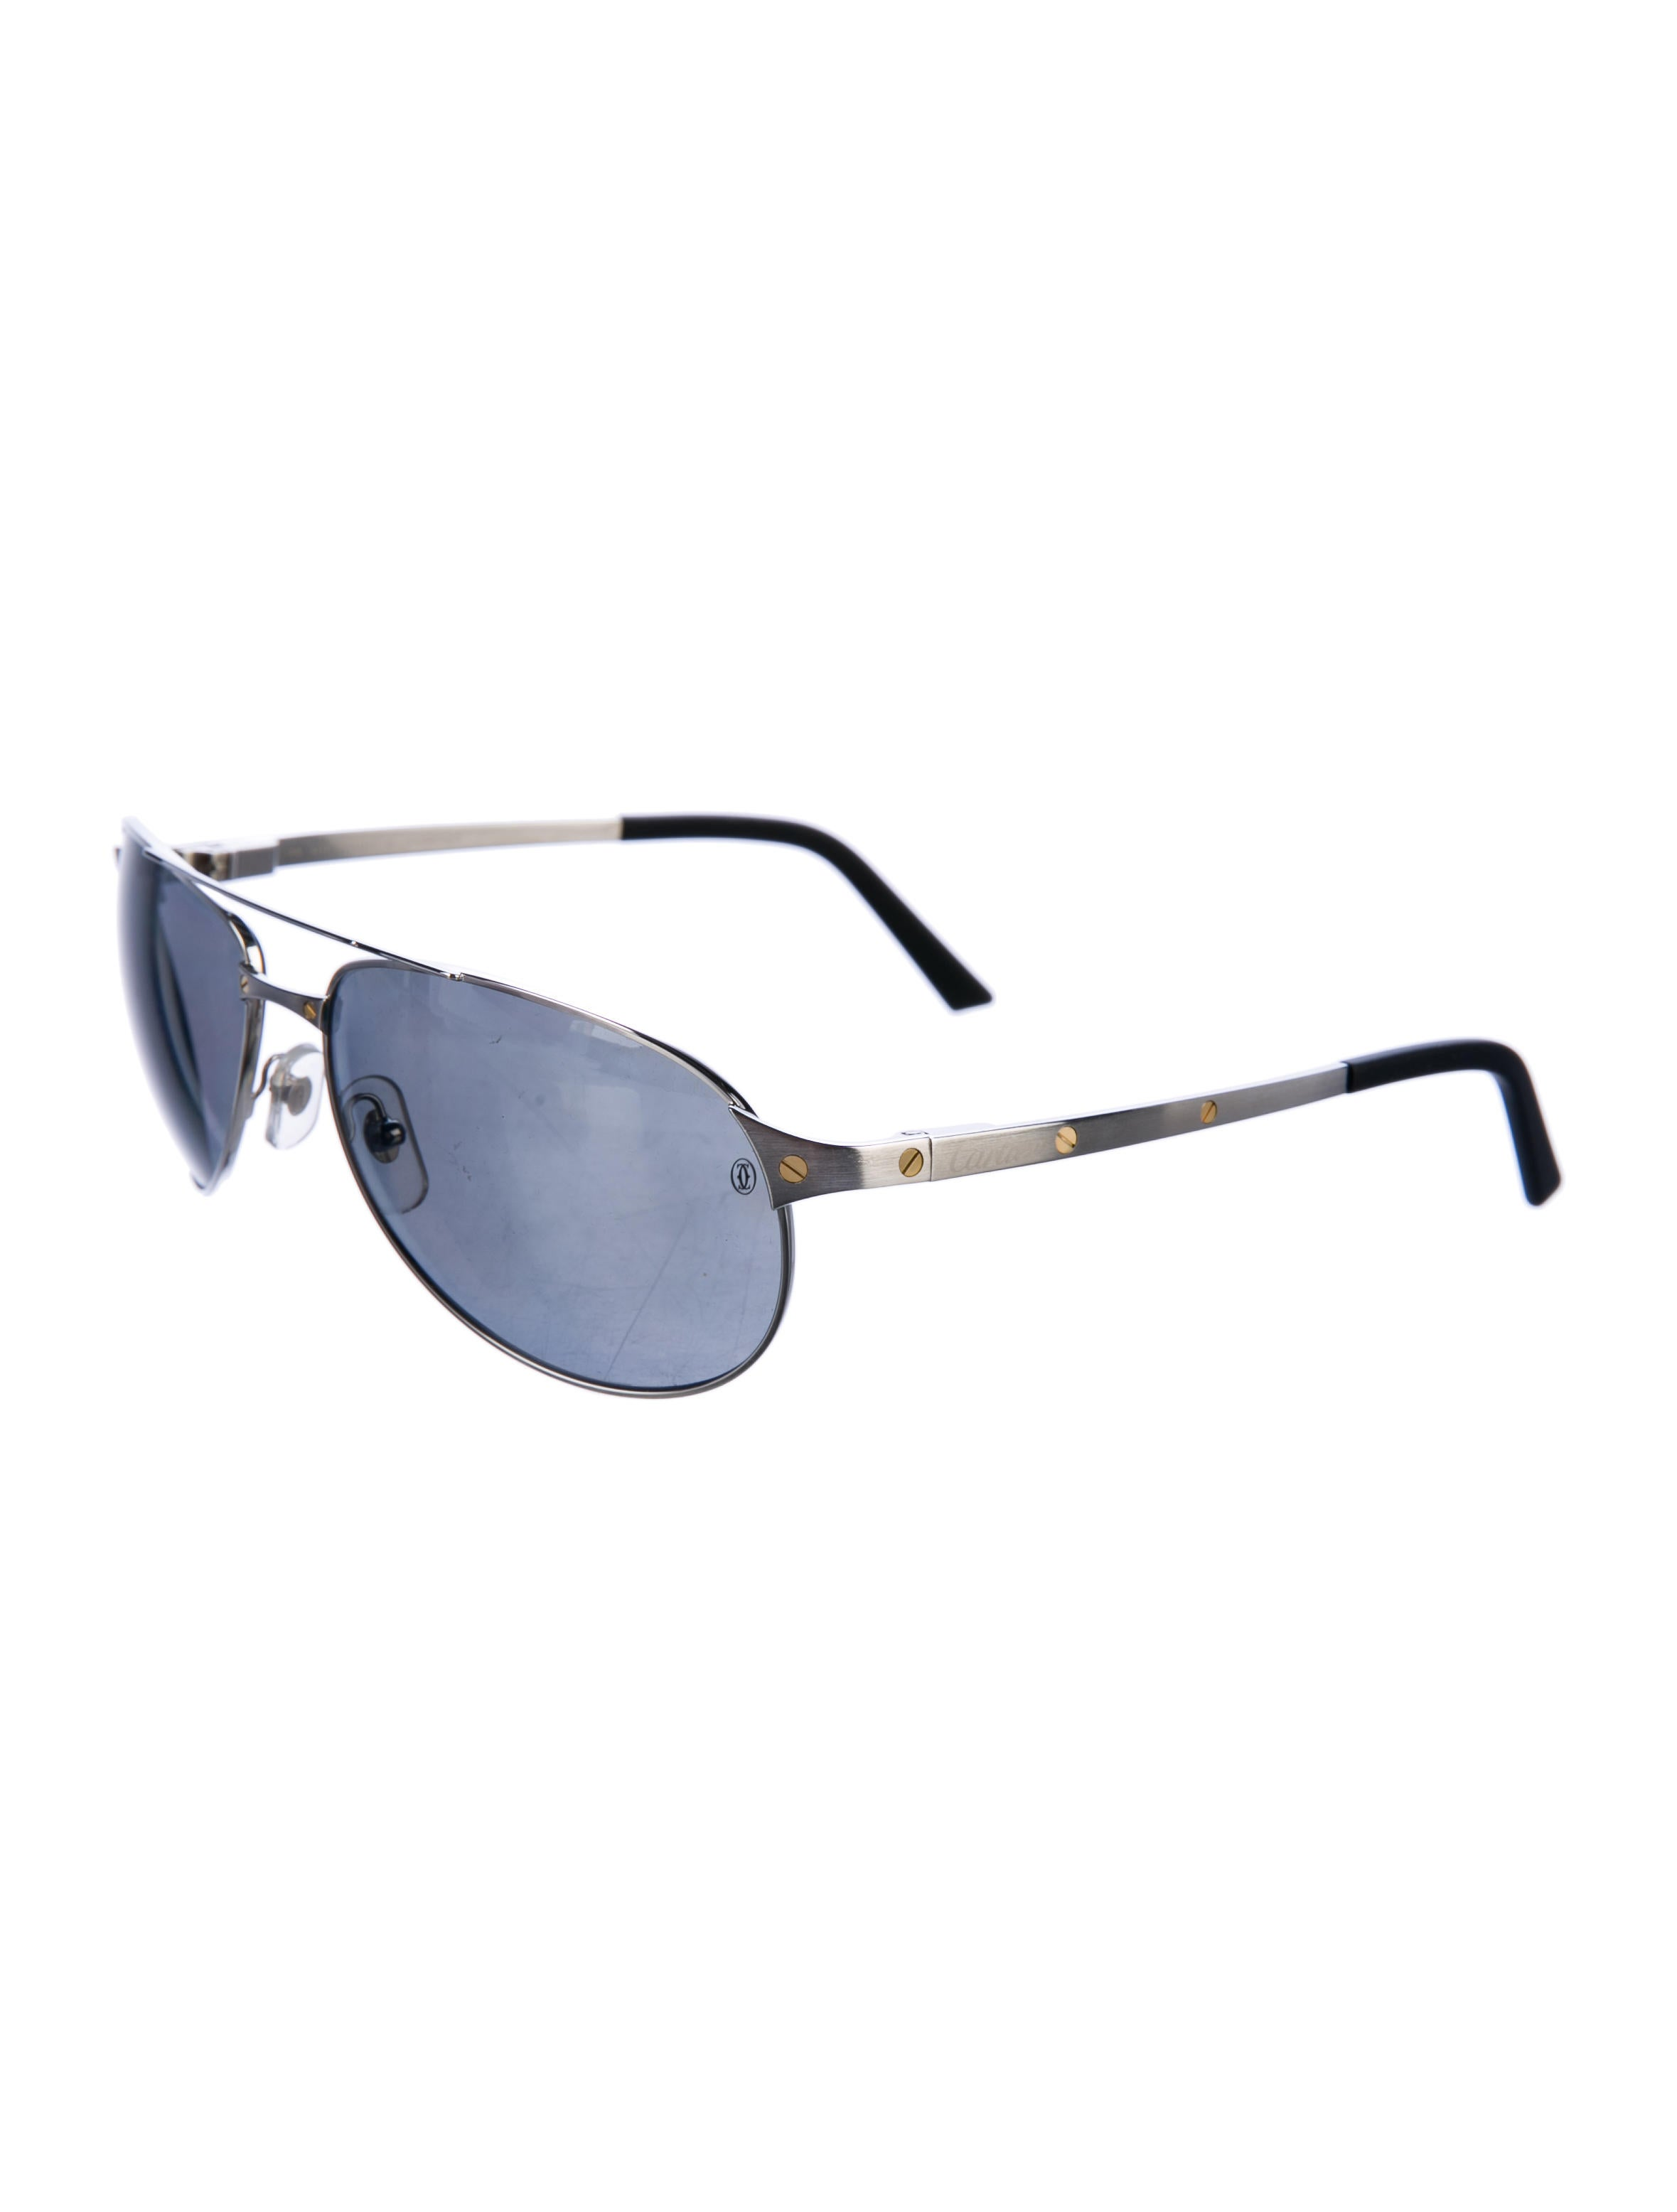 c3584307c98 Cartier Mens Sunglasses Santos - Bitterroot Public Library